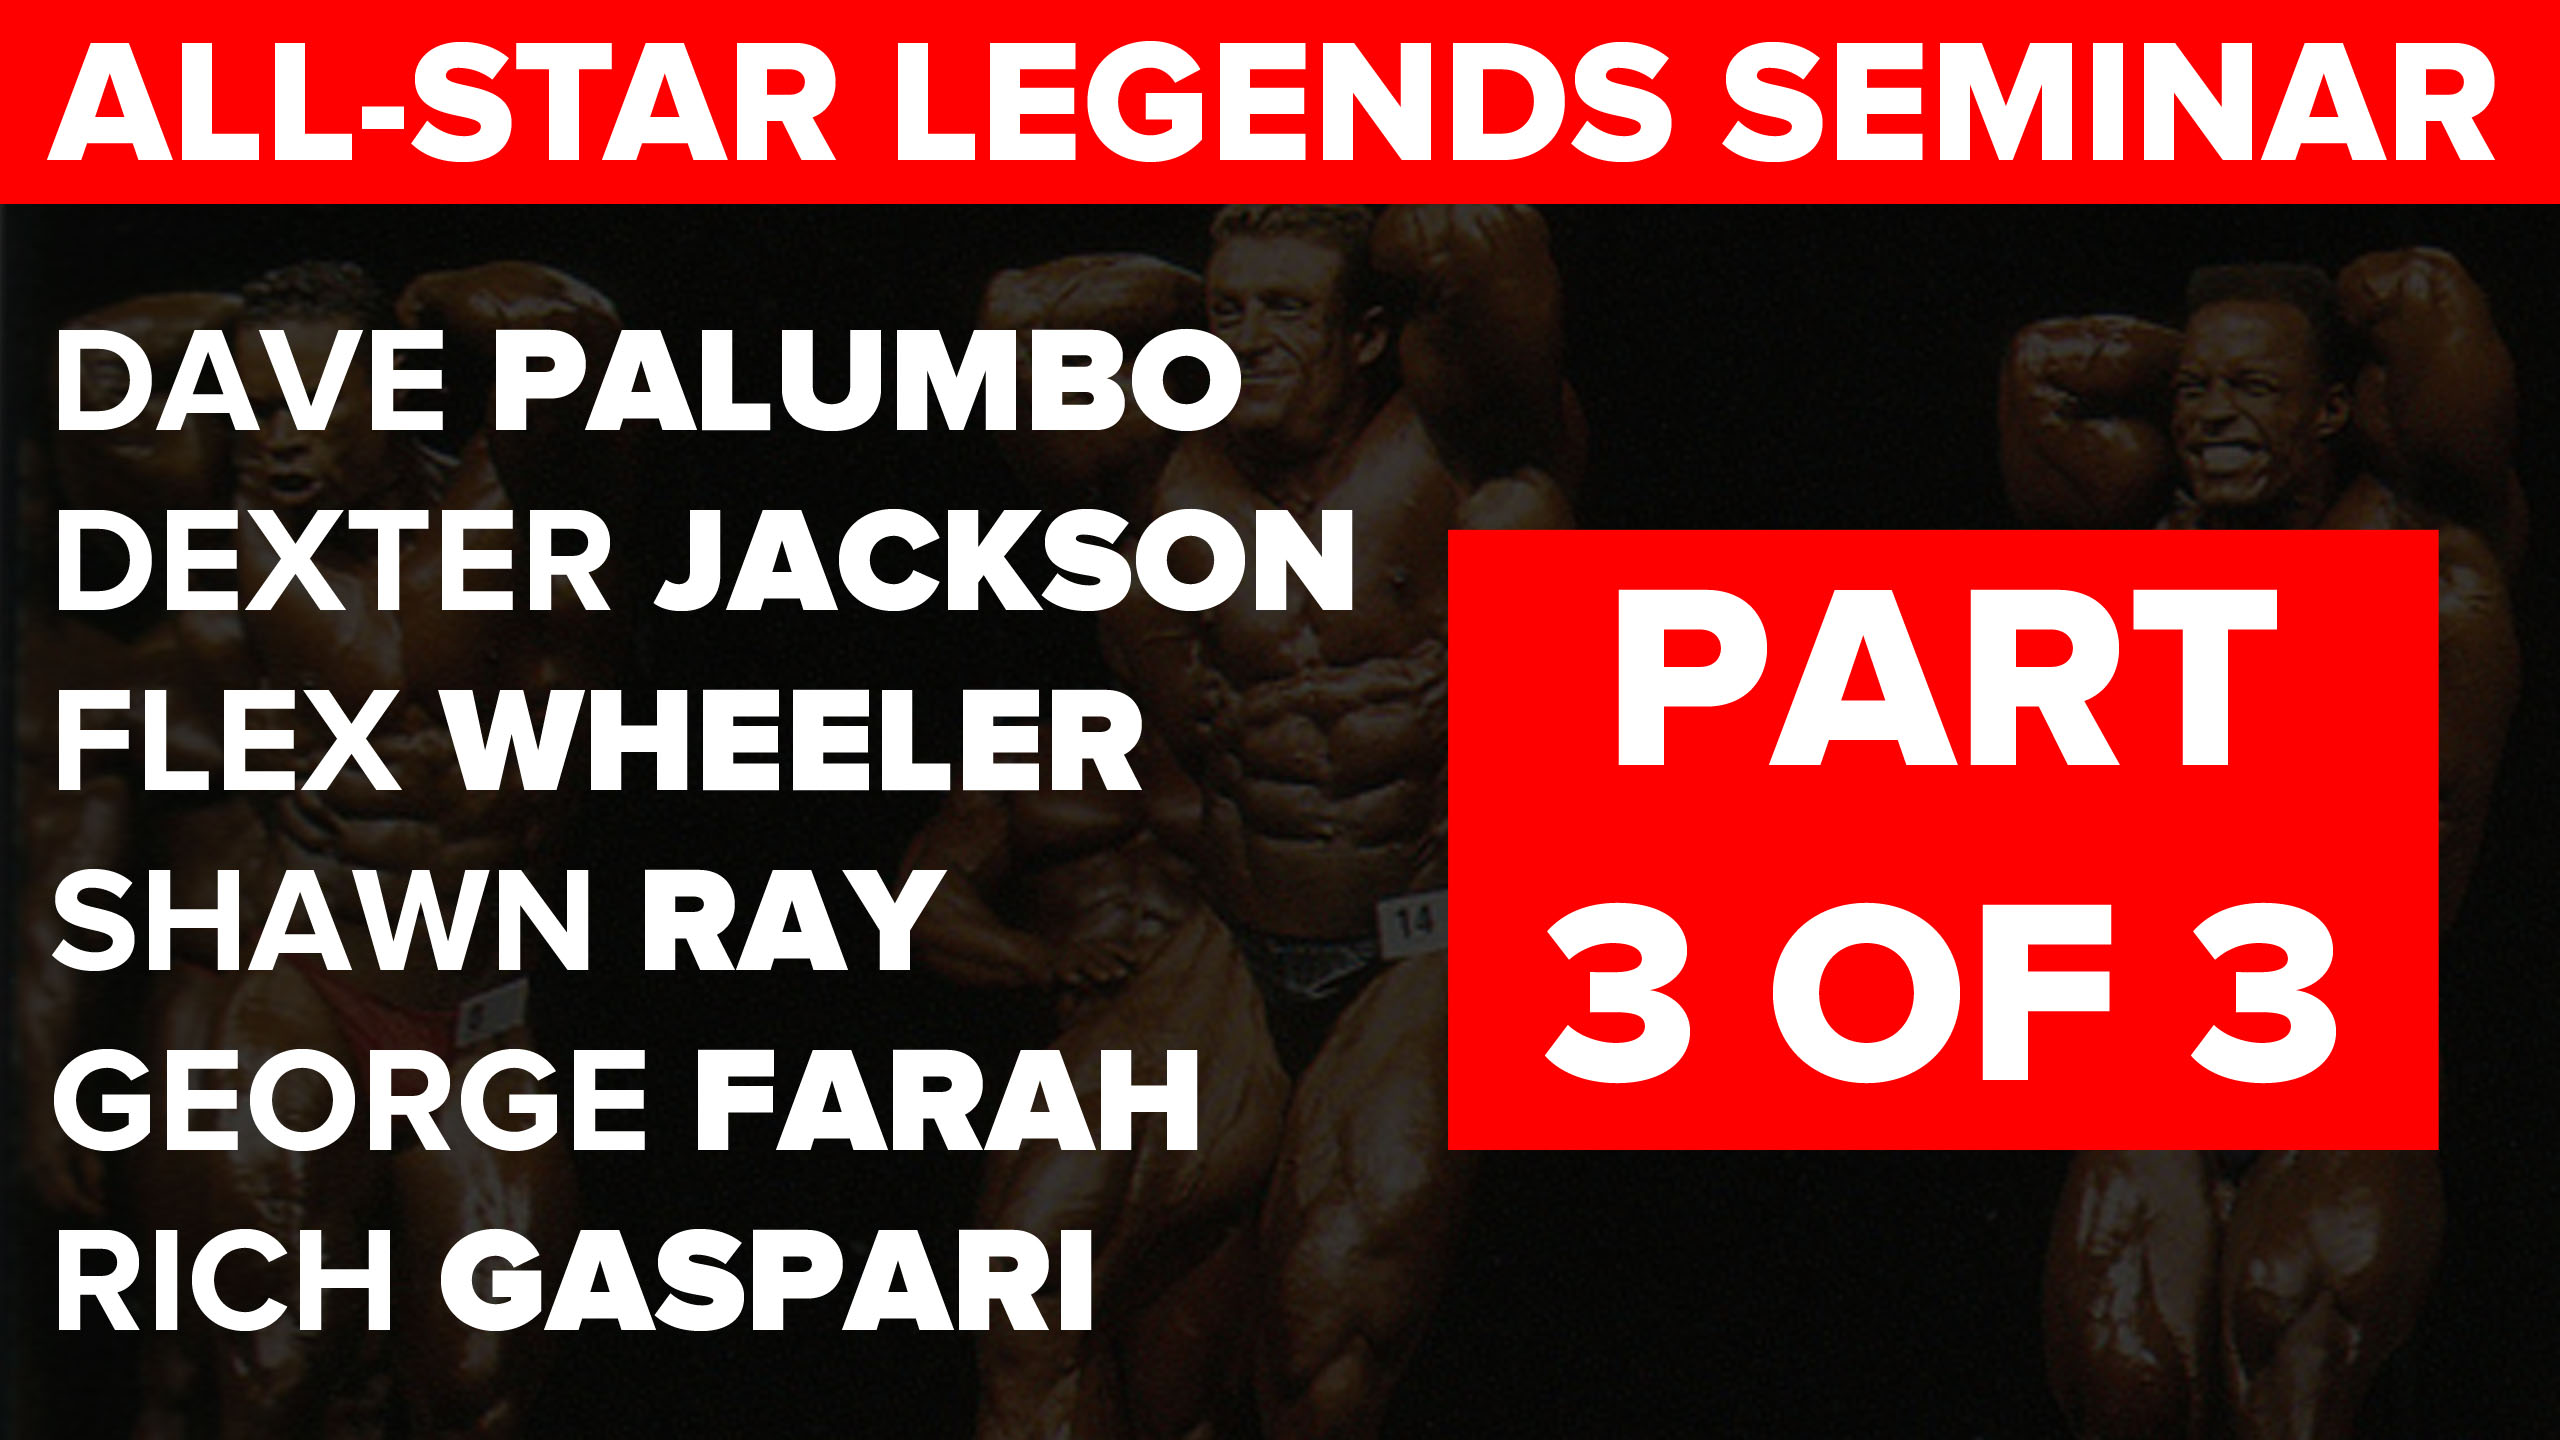 legends seminar part 3